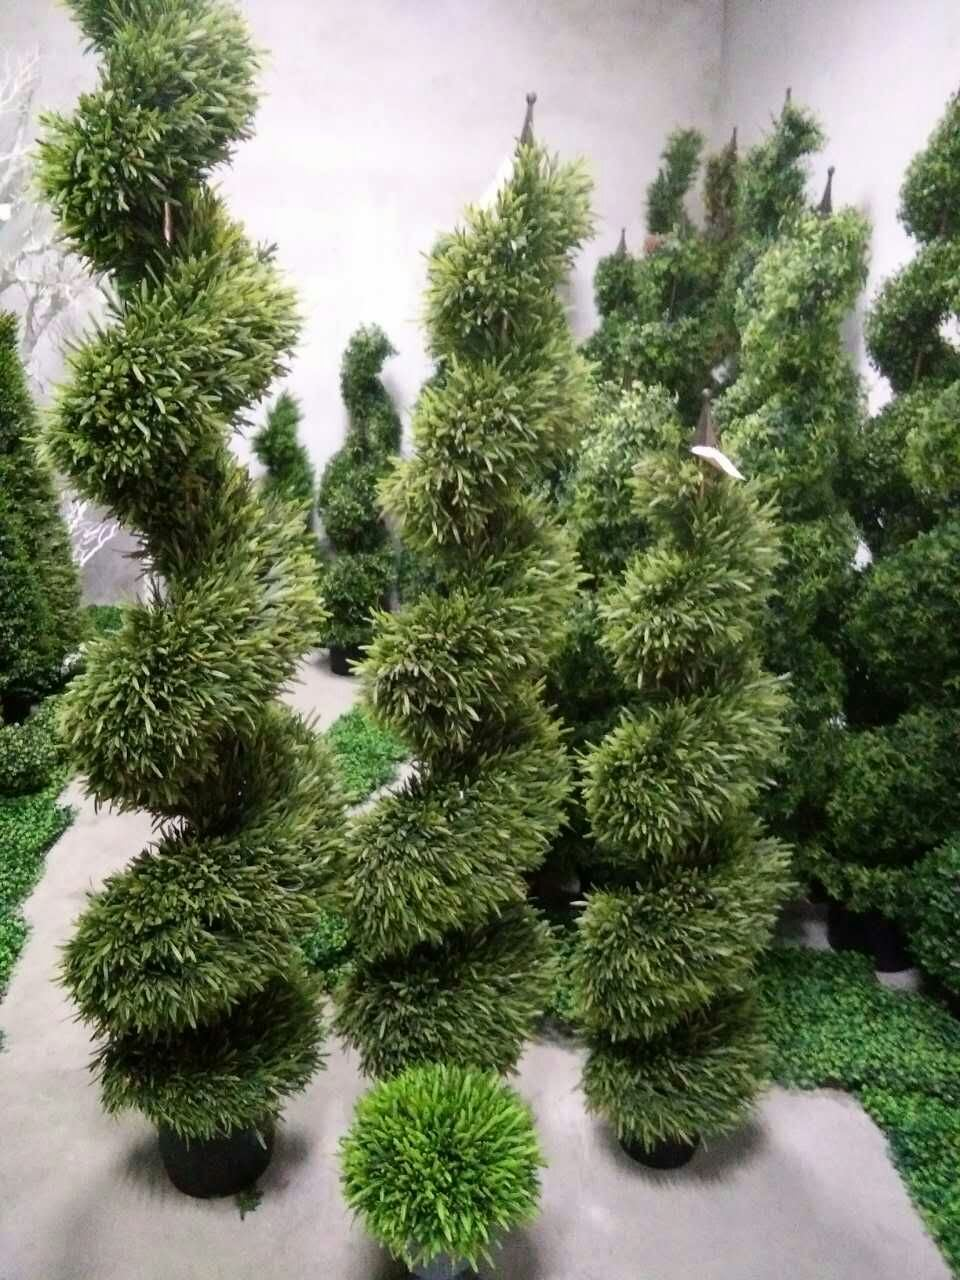 Artificial Plants and Flowers of Boxwood Tree Gu828289392